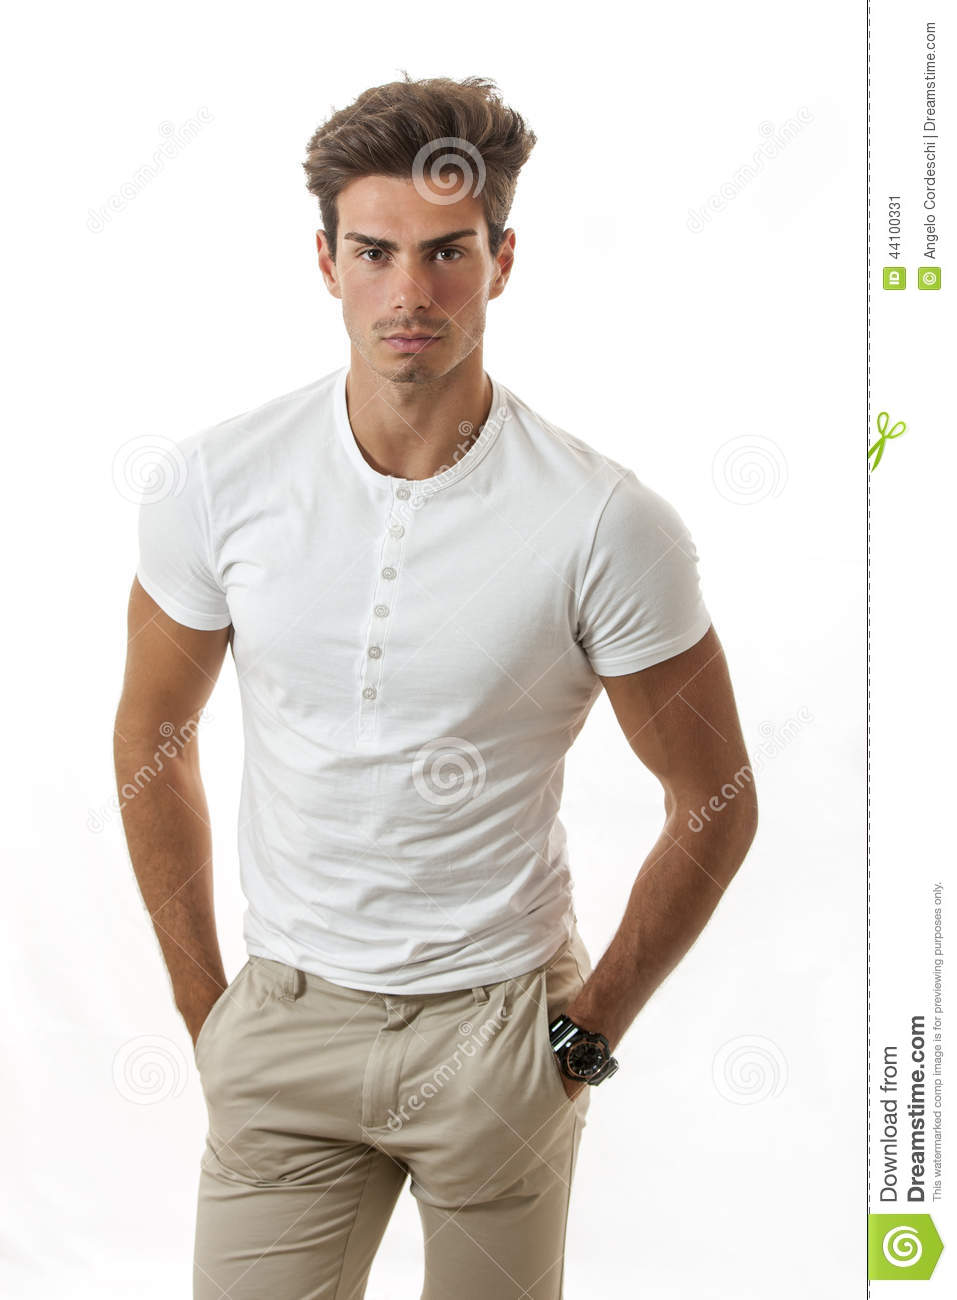 Manly Male Model Trendy Hairstyle Stock Photo Image